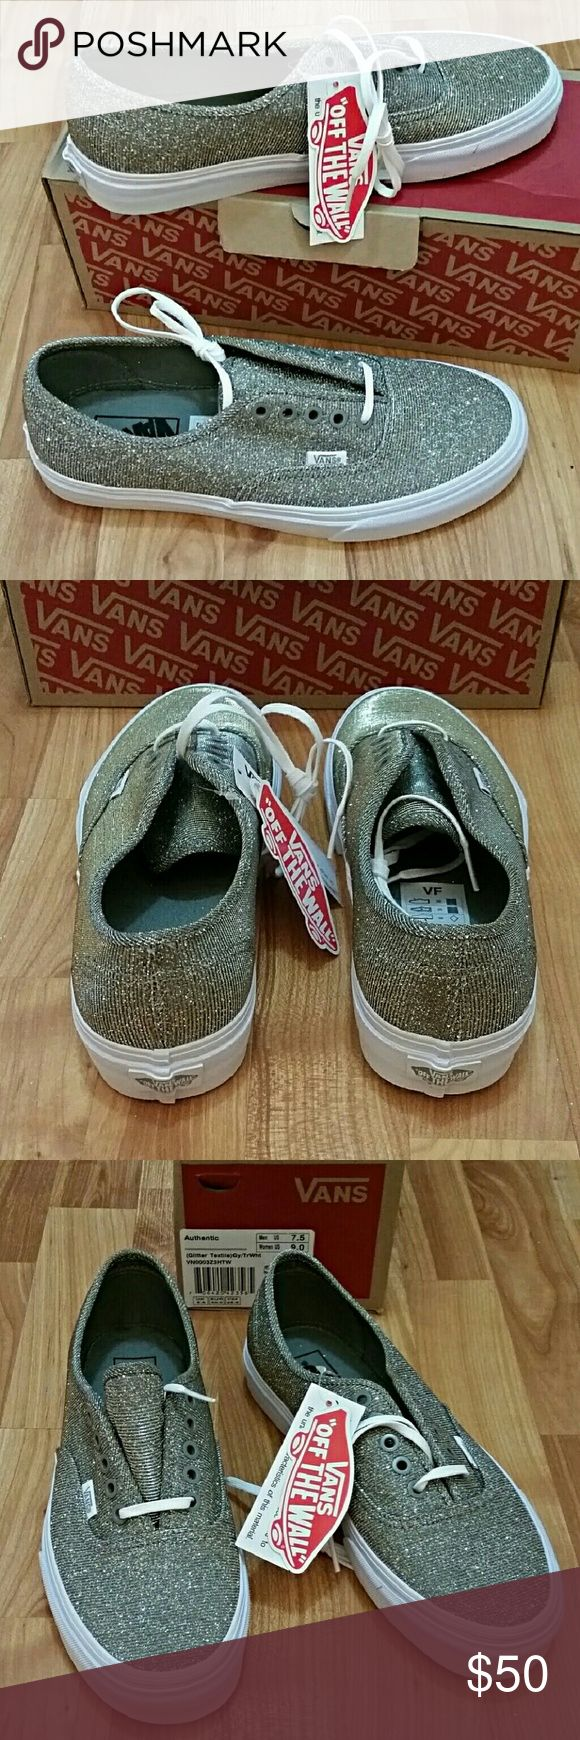 Gold Glitter Vans Classics Gold Glitter Vans Authentics. So fun and unique! Brand  new with box. Vans Shoes Sneakers